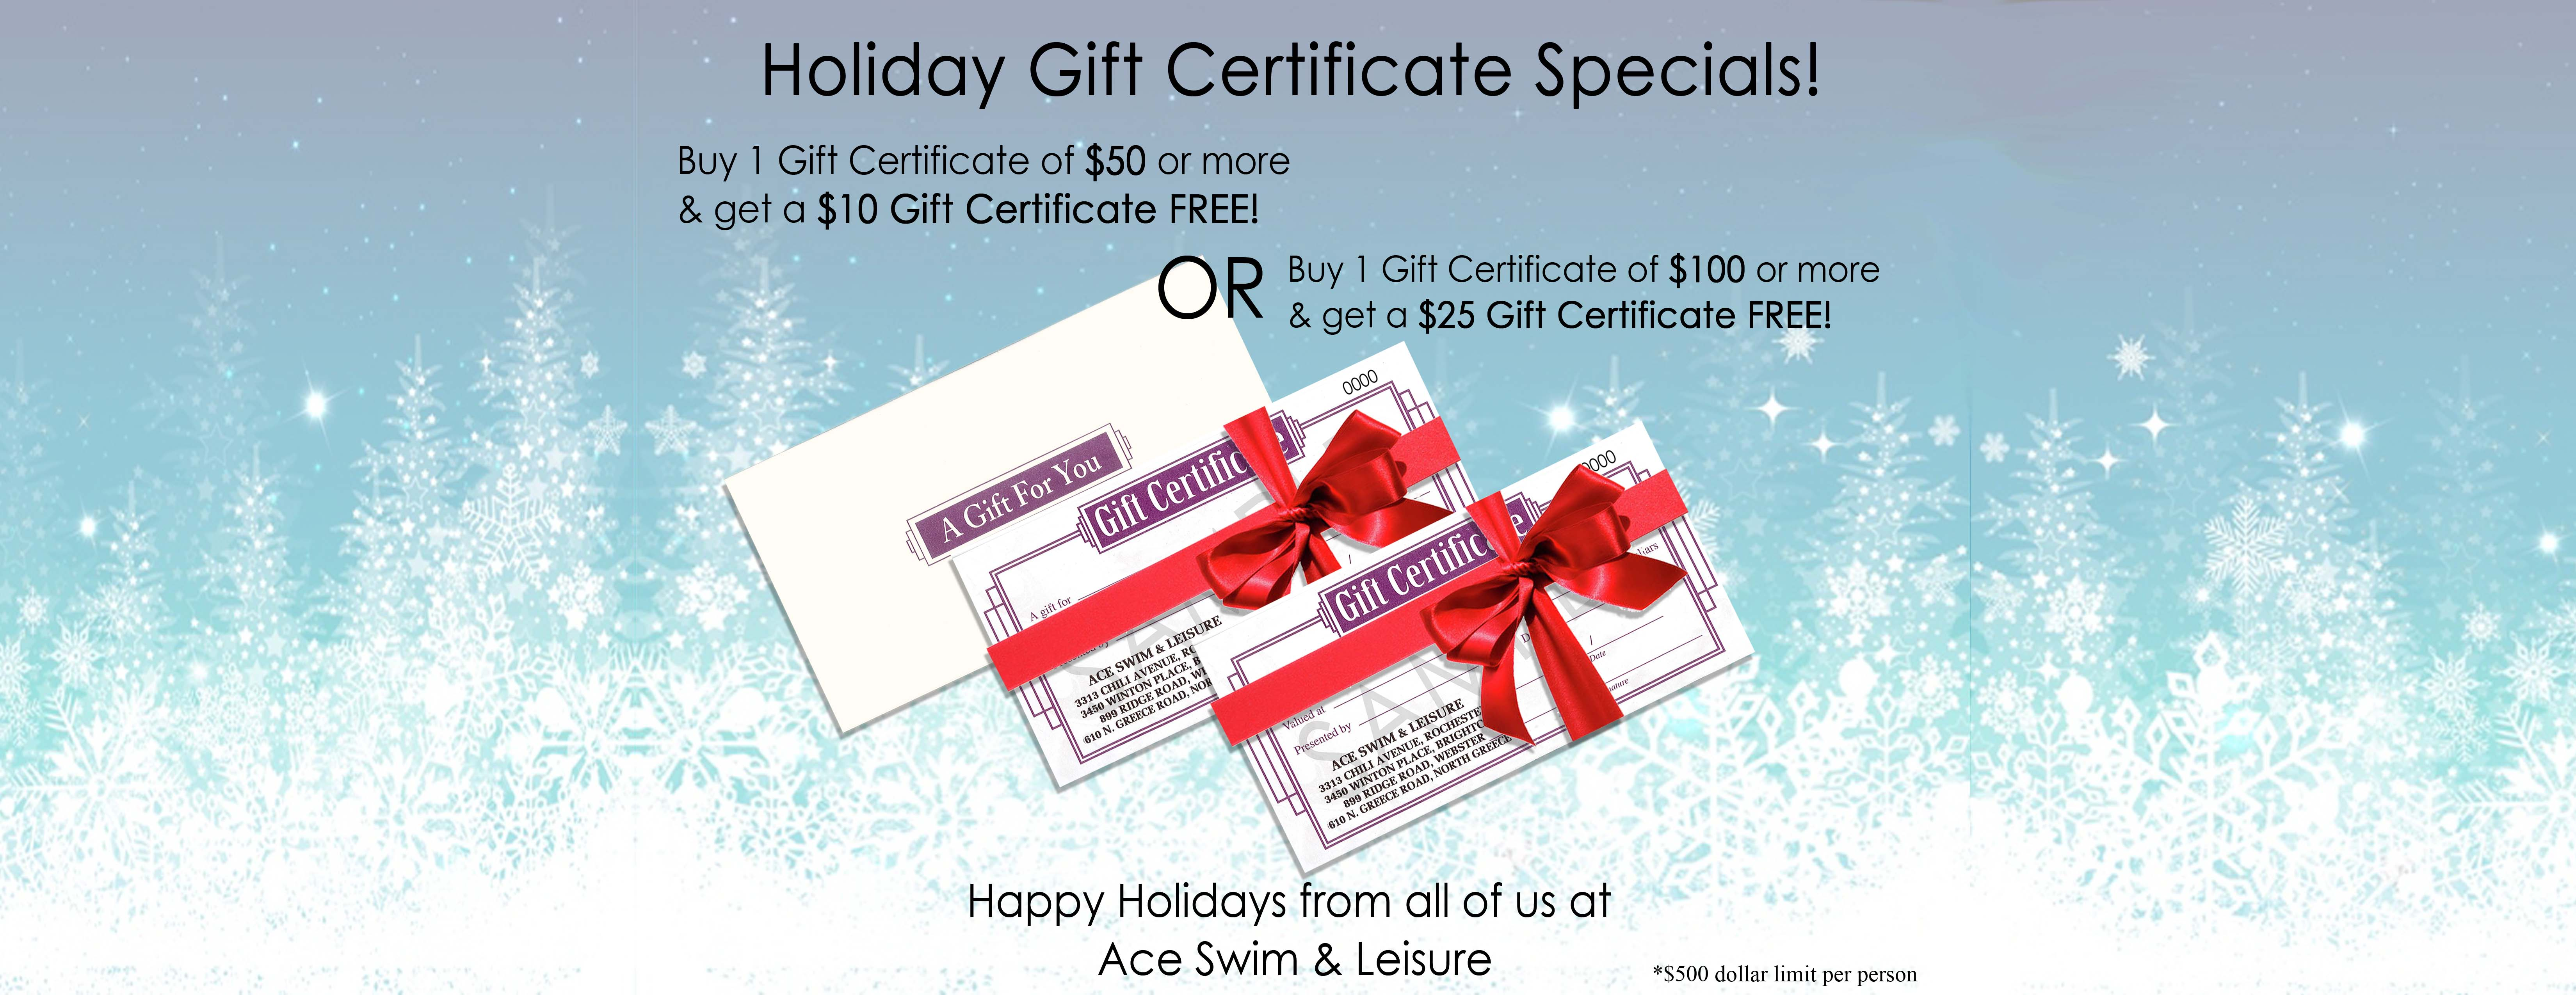 holiday_gift_cert_2020web